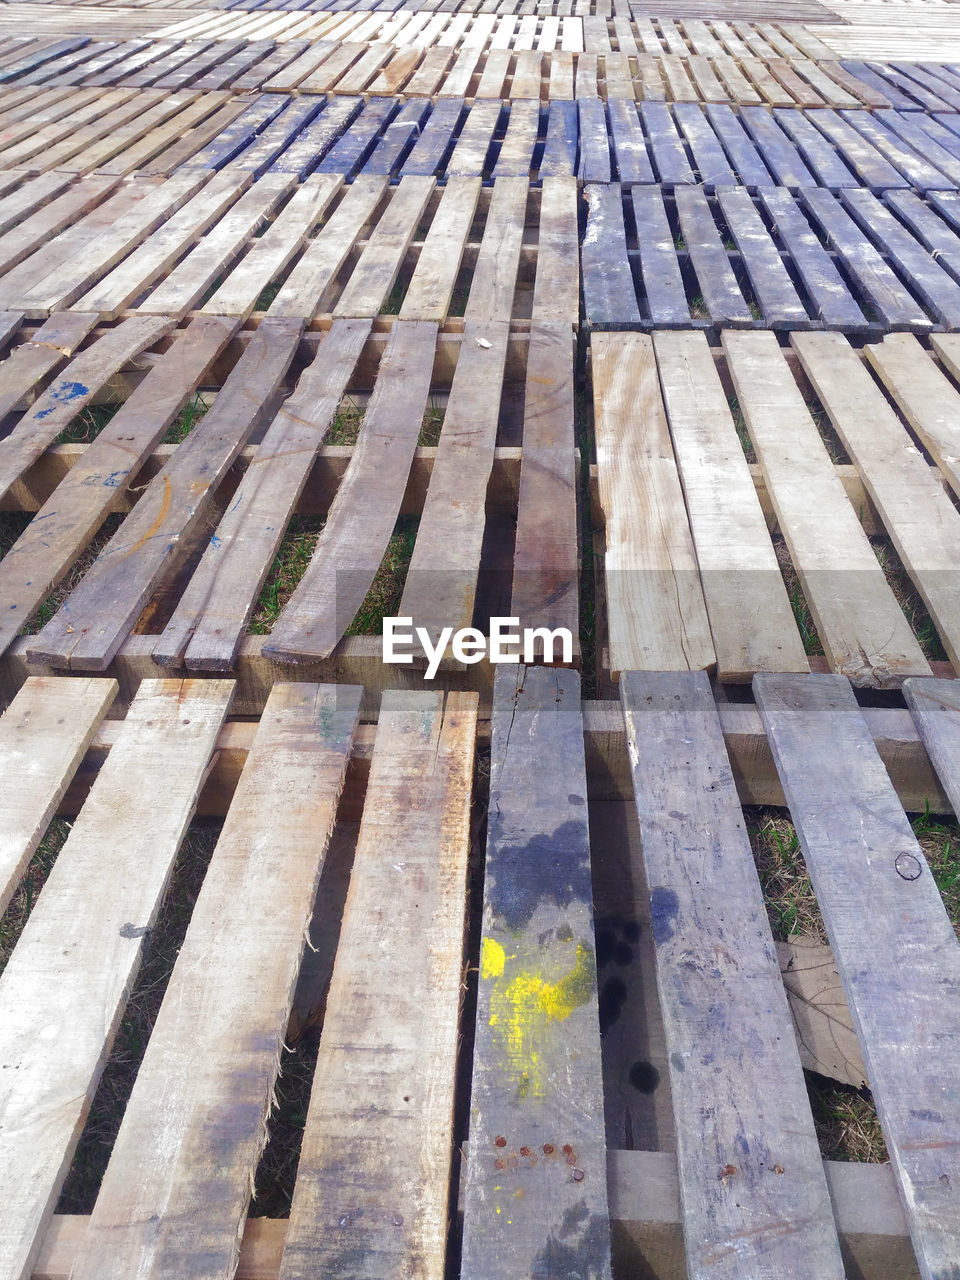 wood - material, pattern, full frame, high angle view, no people, day, backgrounds, nature, flooring, outdoors, absence, sunlight, wood, architecture, close-up, repetition, in a row, seat, order, textured